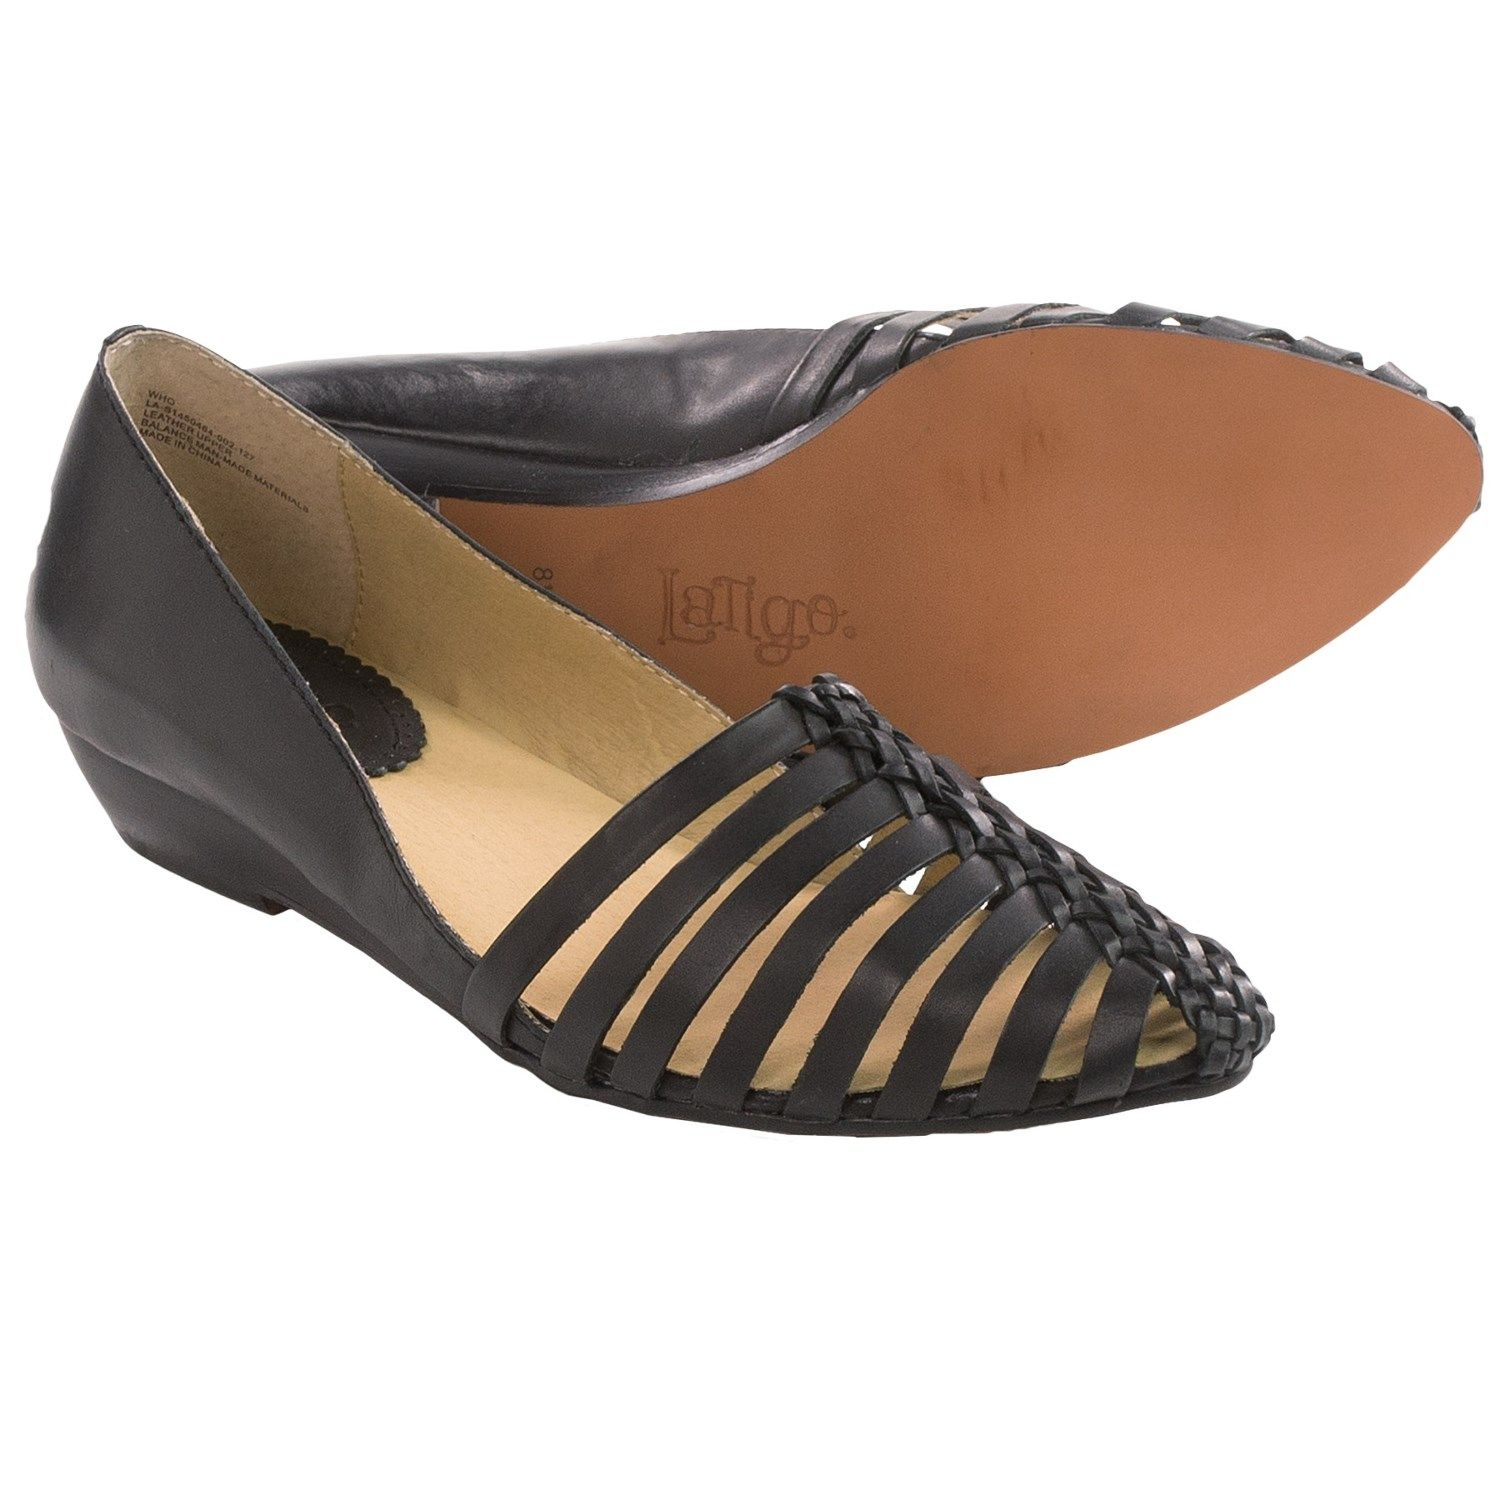 Latigo Who Shoes - Leather (For Women)